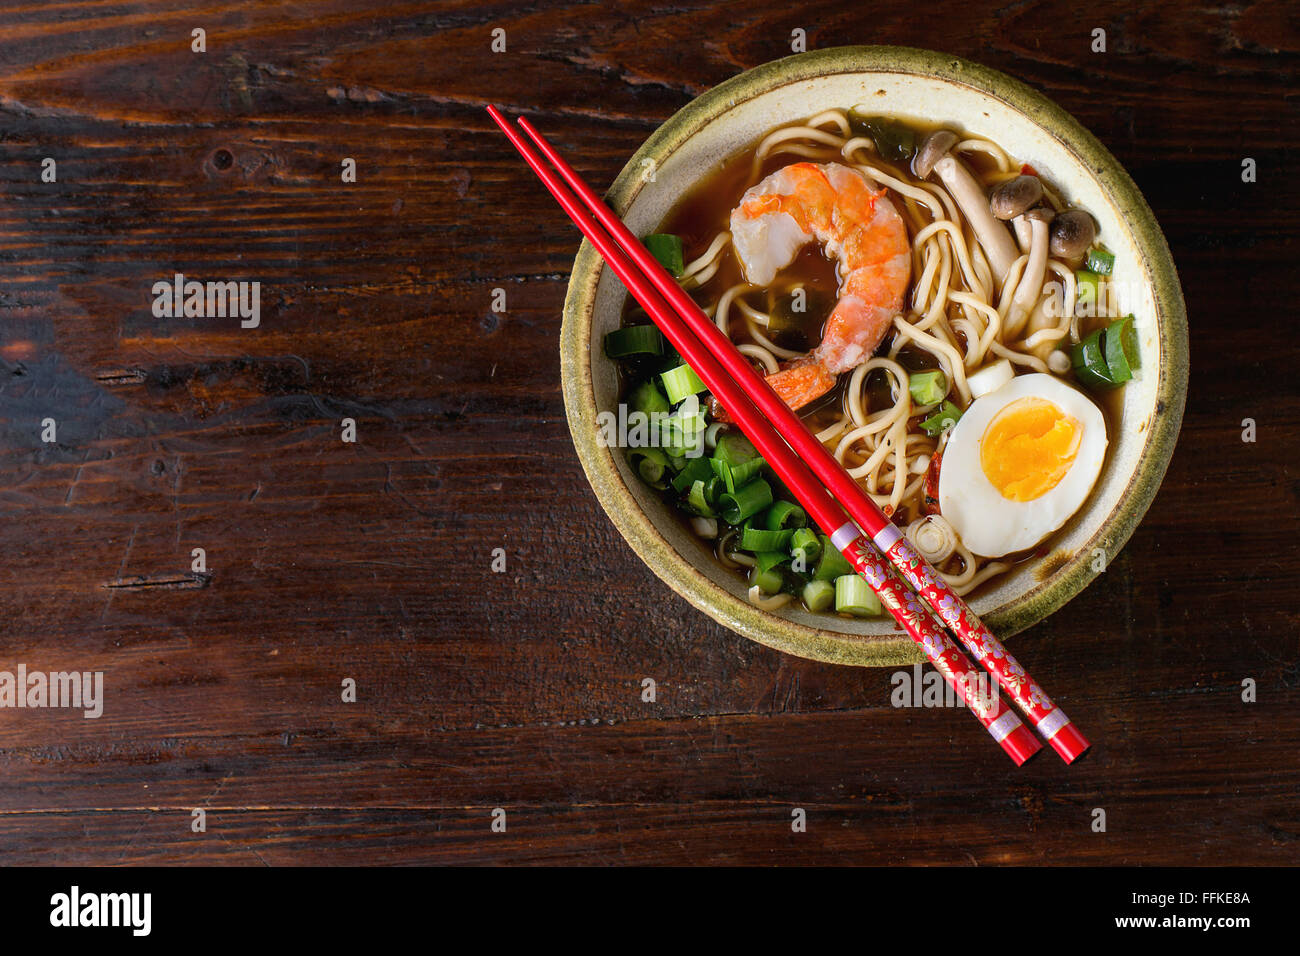 Ceramic bowl of asian ramen soup with shrimp, noodles, spring onion, sliced egg and mushrooms, served with red chopsticks - Stock Image